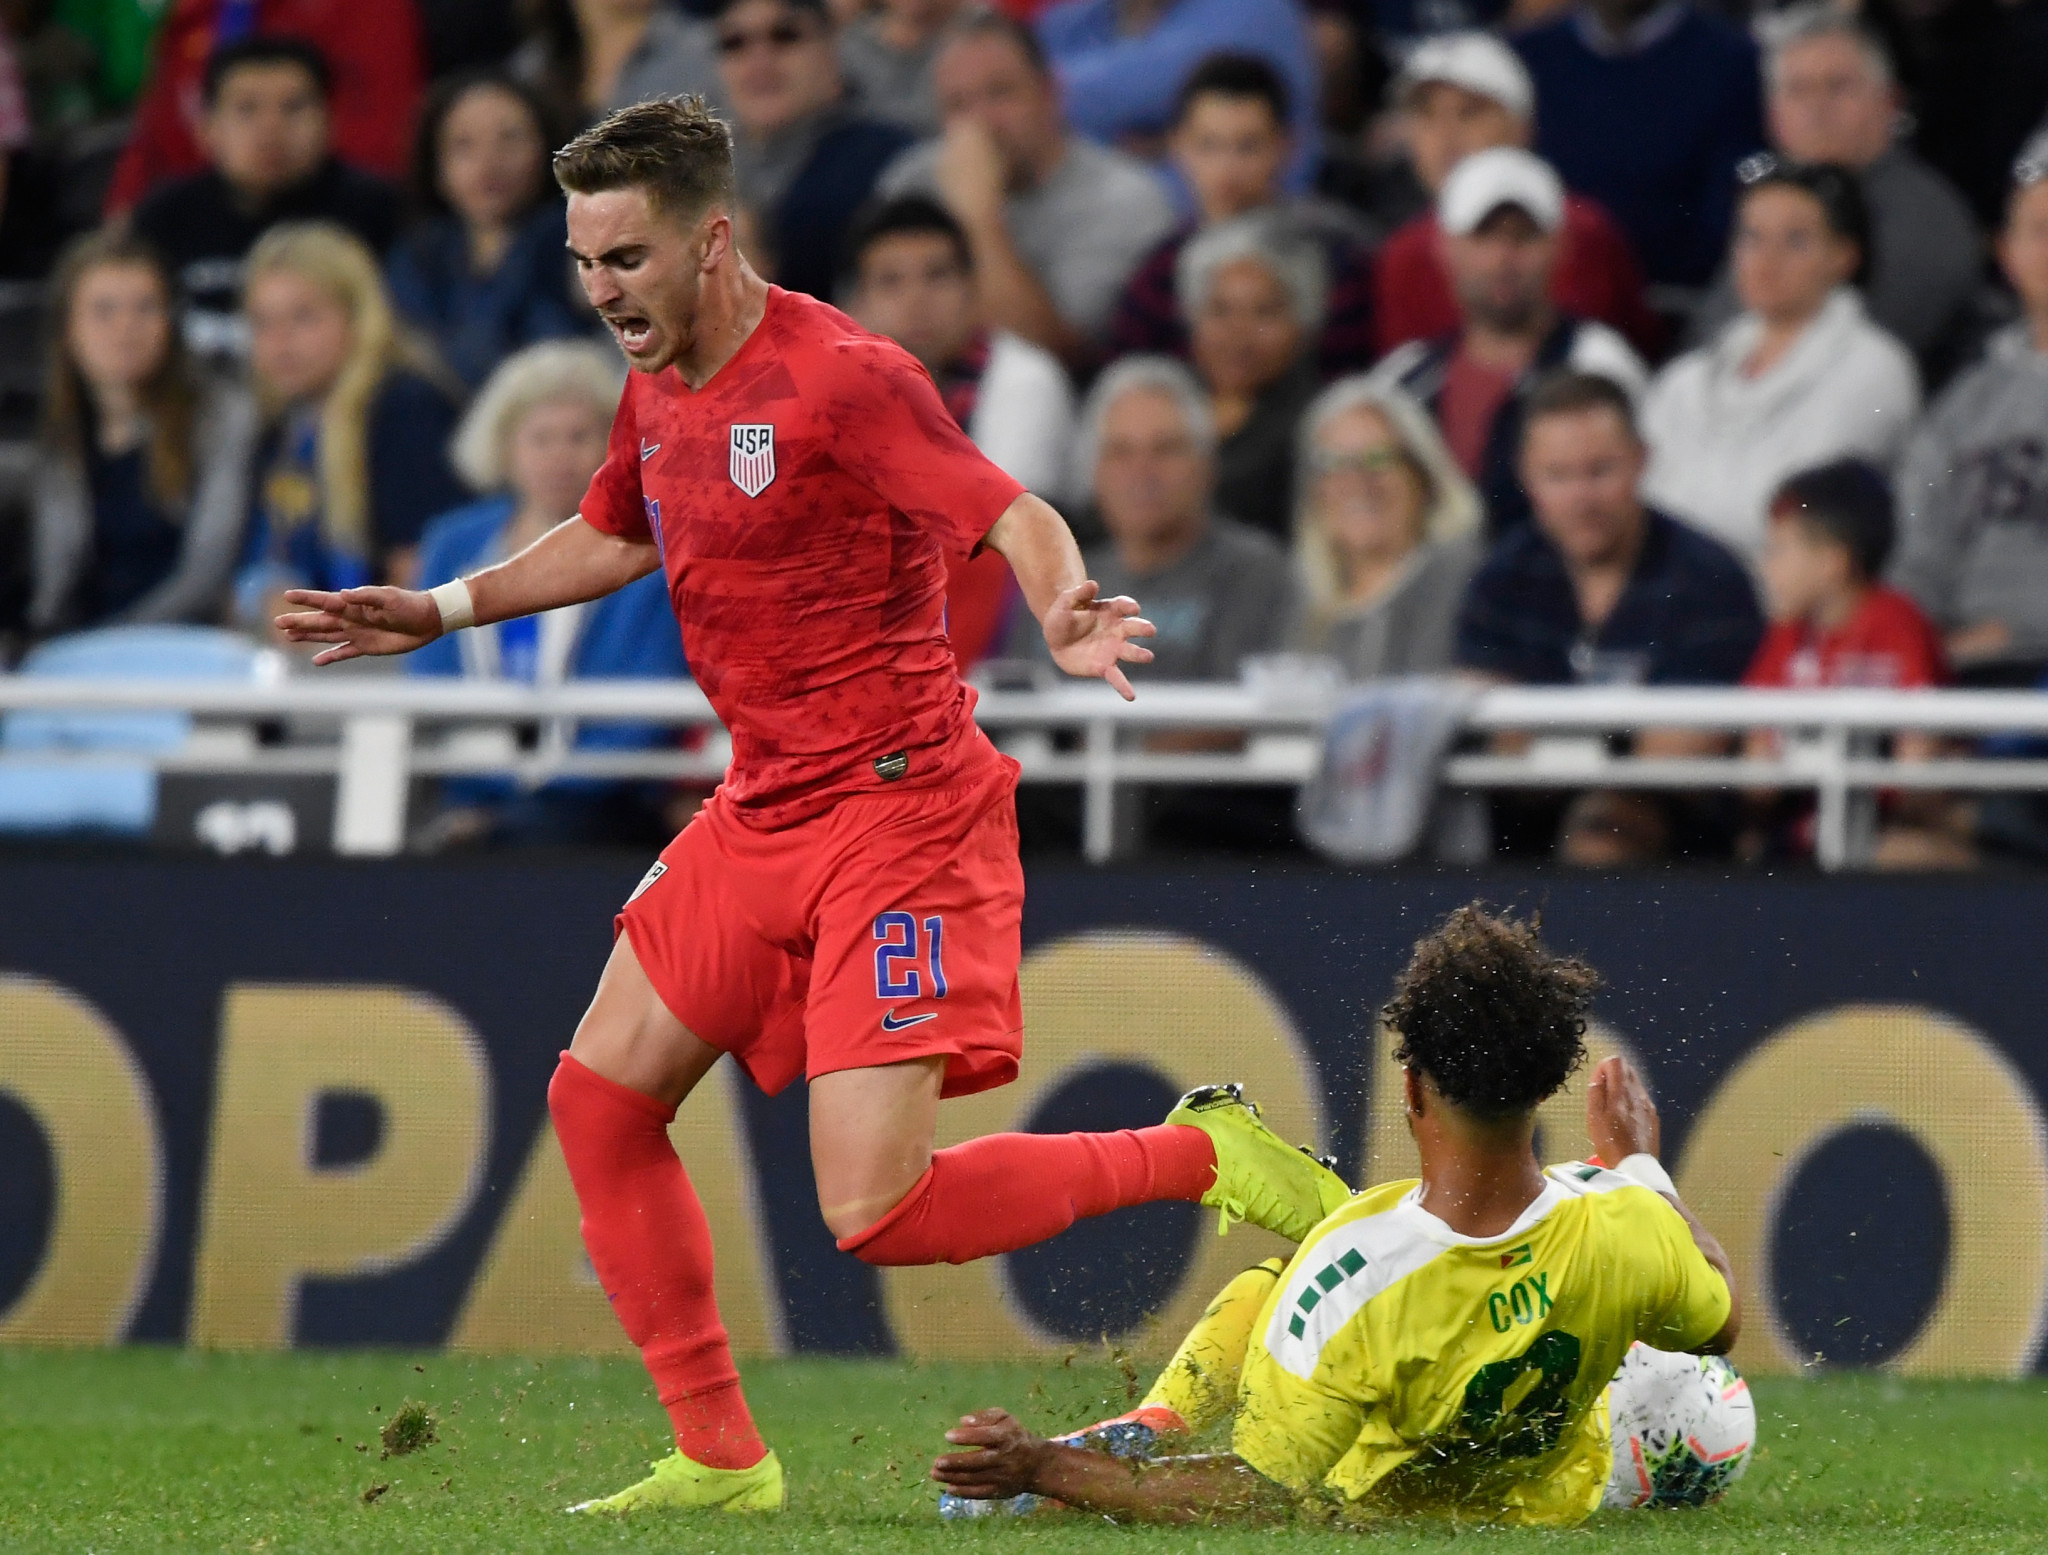 Hosts United States begin Gold Cup defence by comfortably dispatching Guyana